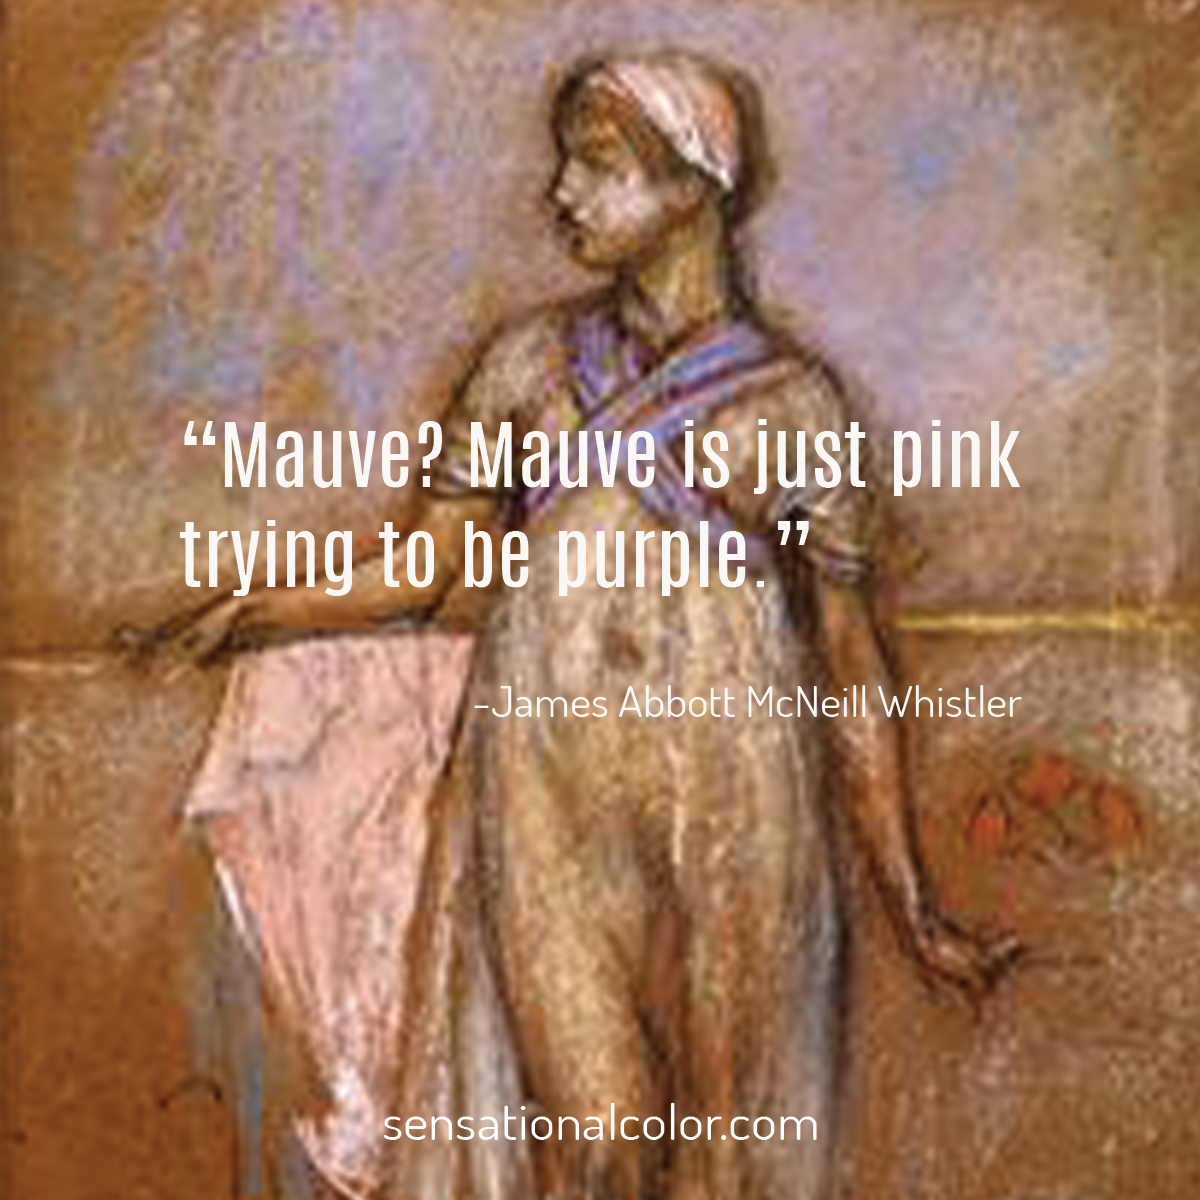 """Mauve? Mauve is just pink trying to be purple."" - James Abbott McNeill Whistler"